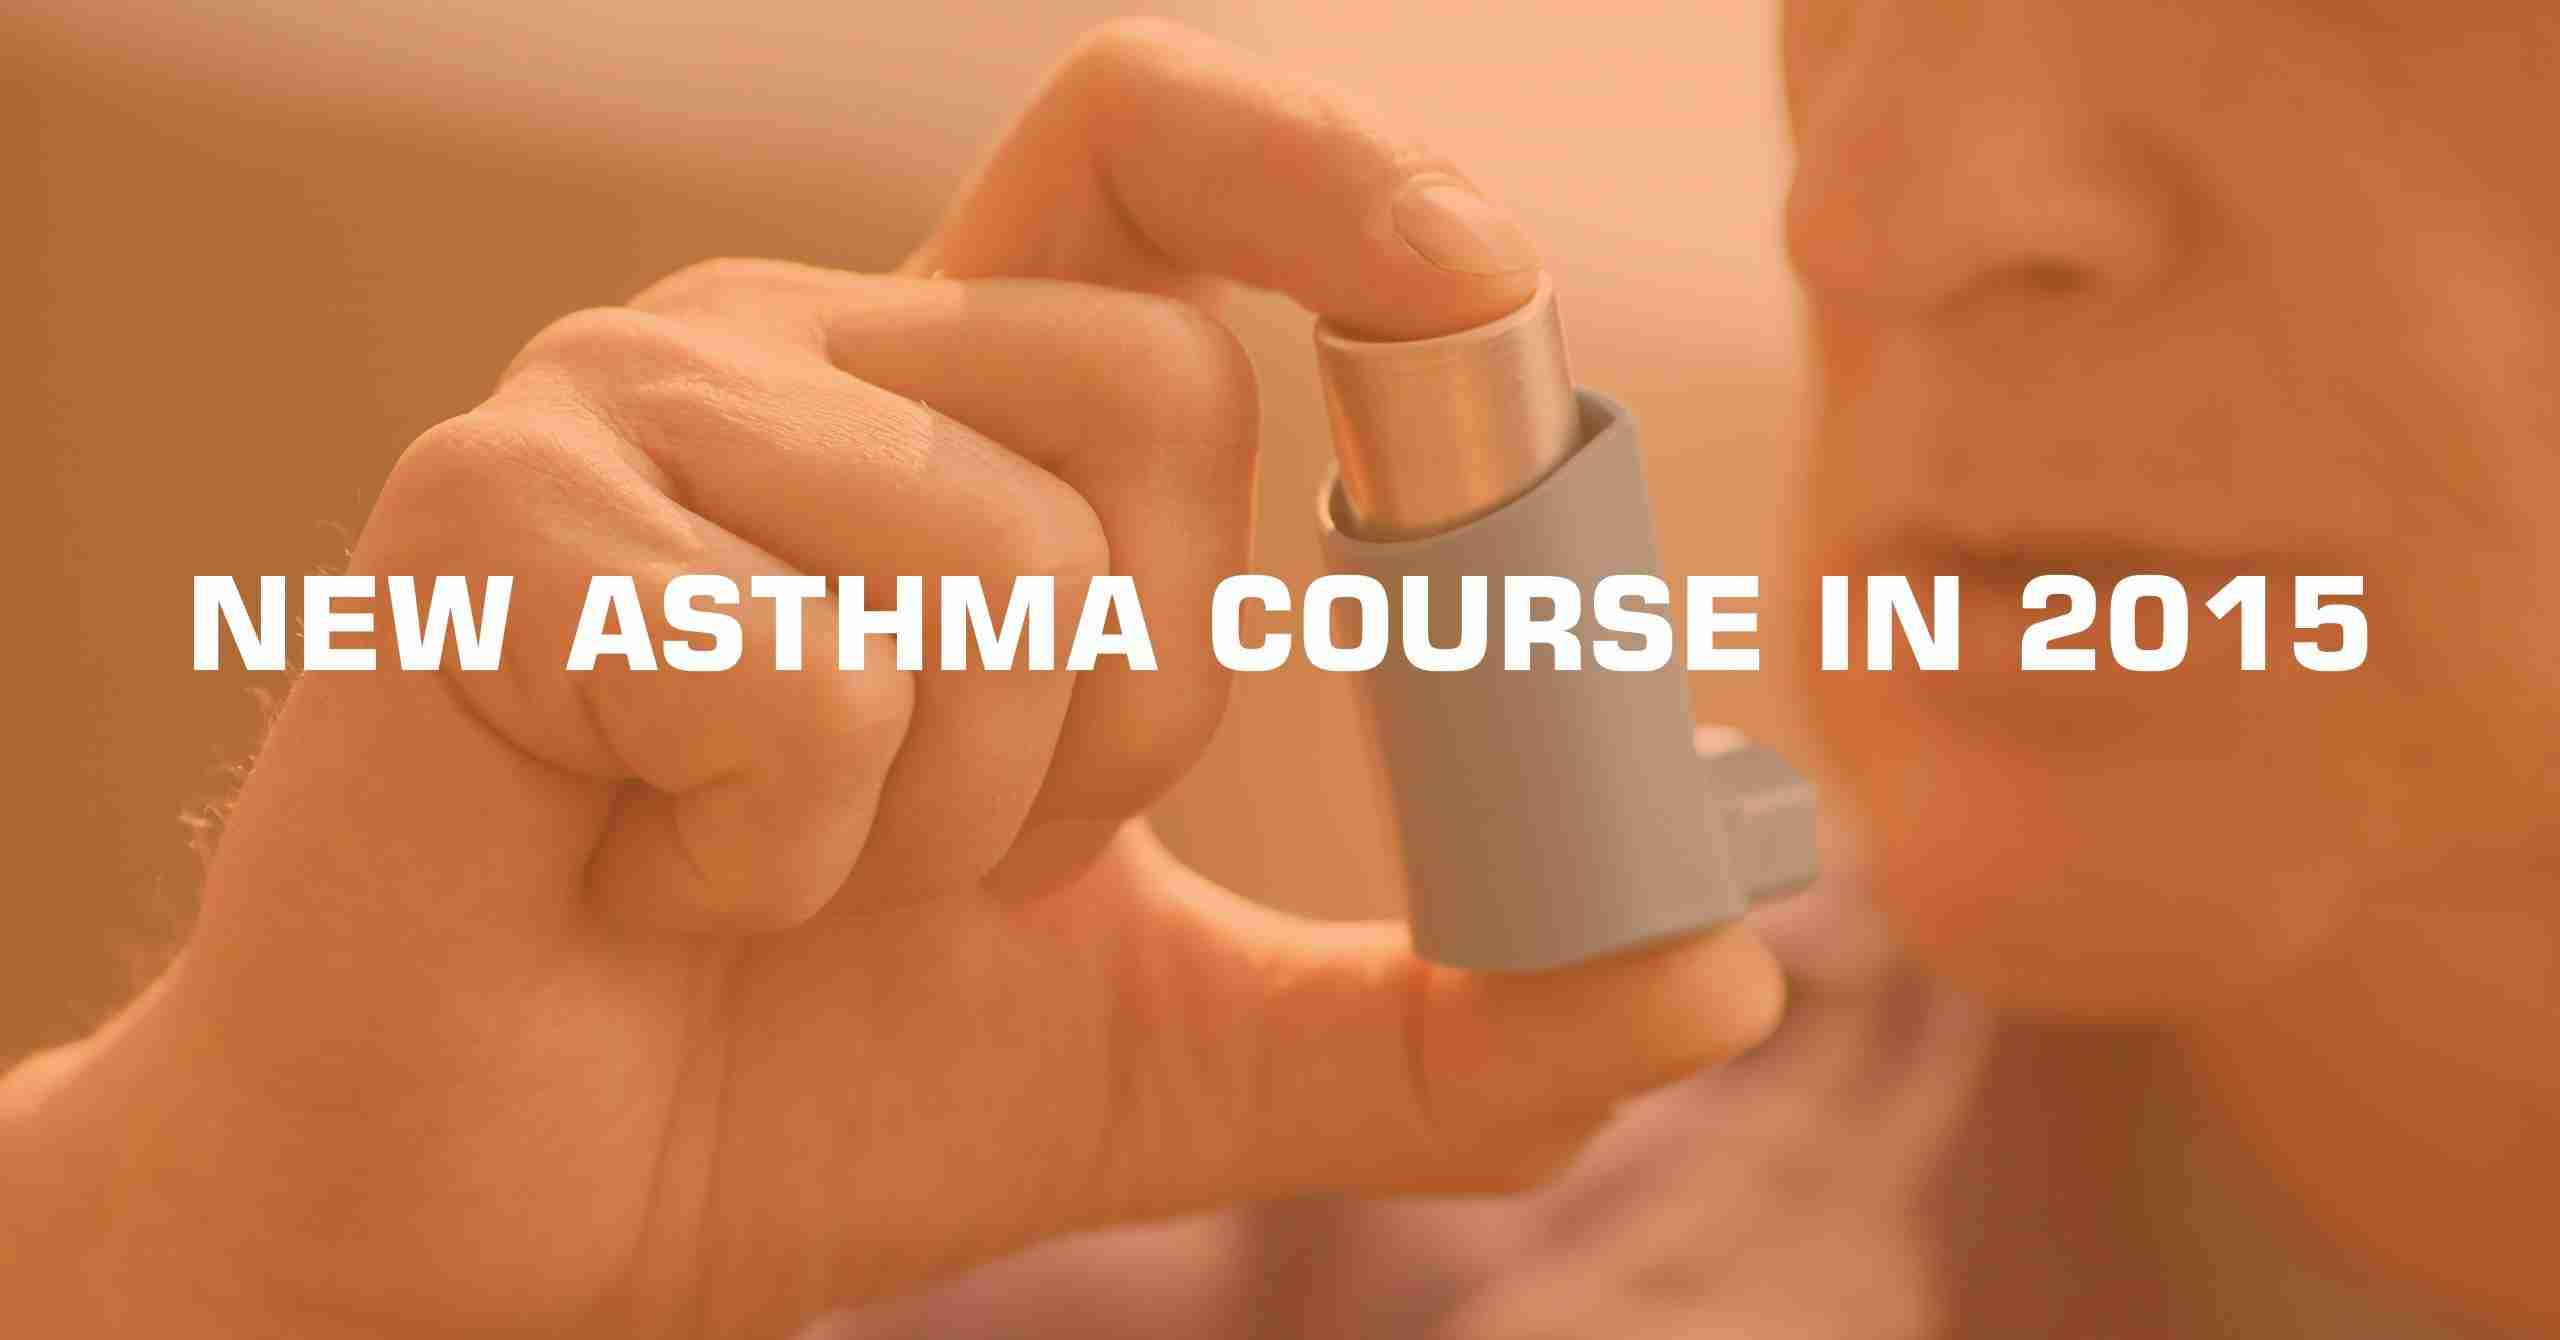 NEW ASTHMA COURSE IN 2015 min scaled